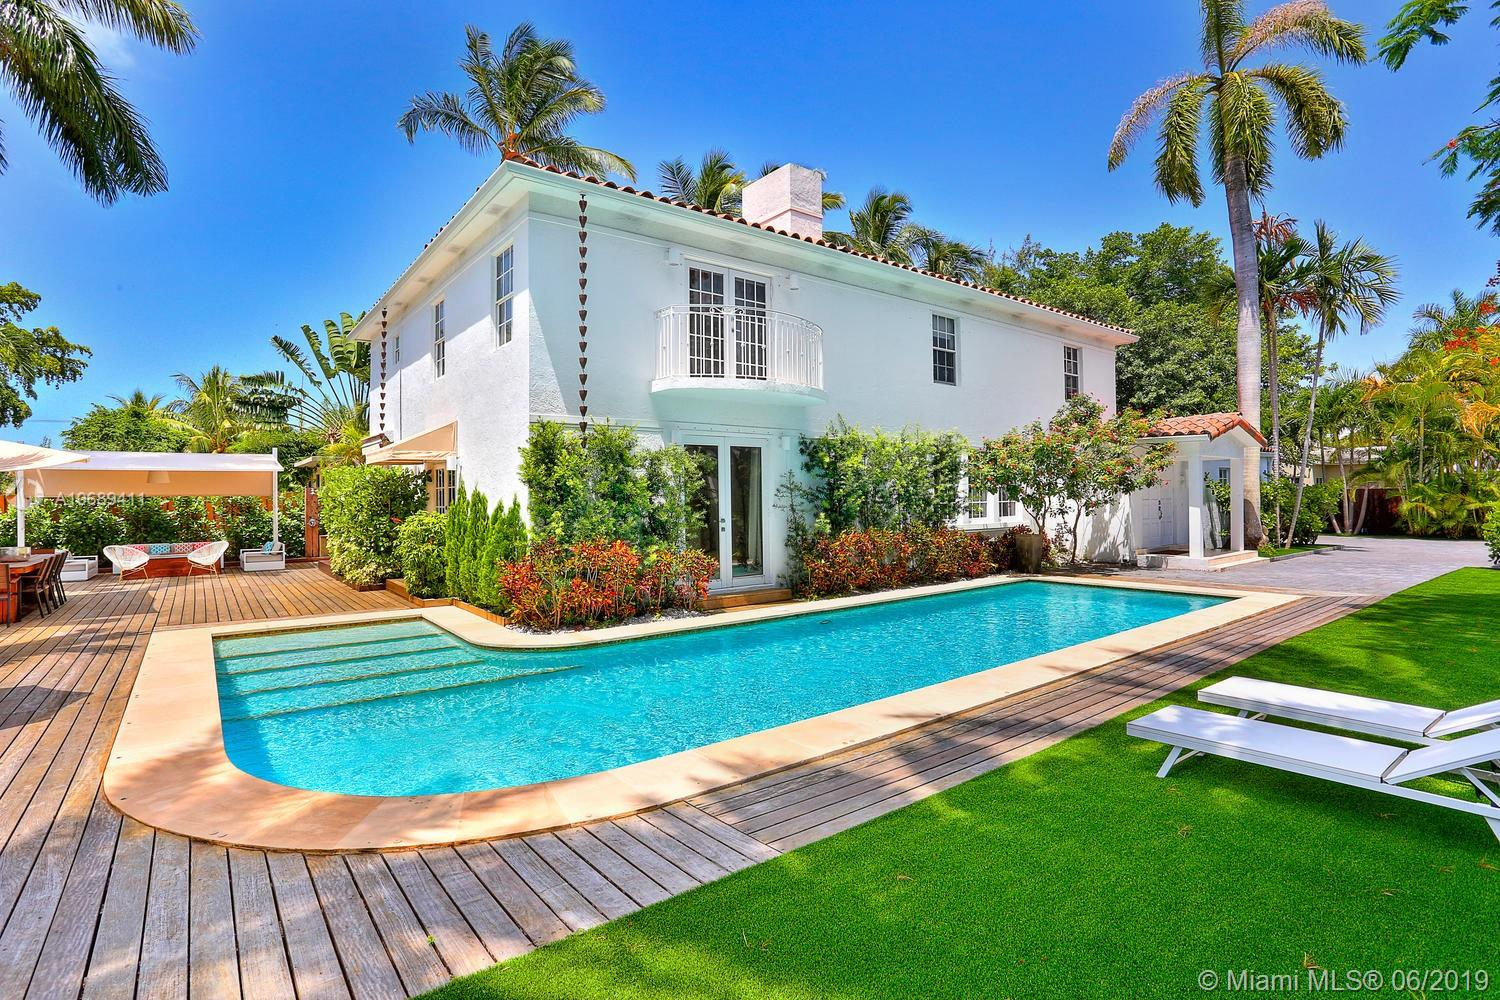 Located on gated and secured Hibiscus Island, this charming 3.857 SqFt, 2 story modern style house offers 5BD/4.5BA and was totally renovated in 2017. 4BD upstairs, including the Master Suite overlooking the L shape pool and garden. This house, located on a 9.500 Sq.Ft corner lot, is in perfect condition. New modern kitchen, new bathrooms, Tile and Wood flooring, new A/C. Additional features : heated pool, outdoor kitchen with bar and large outdoor entertaining area, security system, electric gate, new driveway.This house is made for Families with its service/maid quarter, large family room and open kitchen.